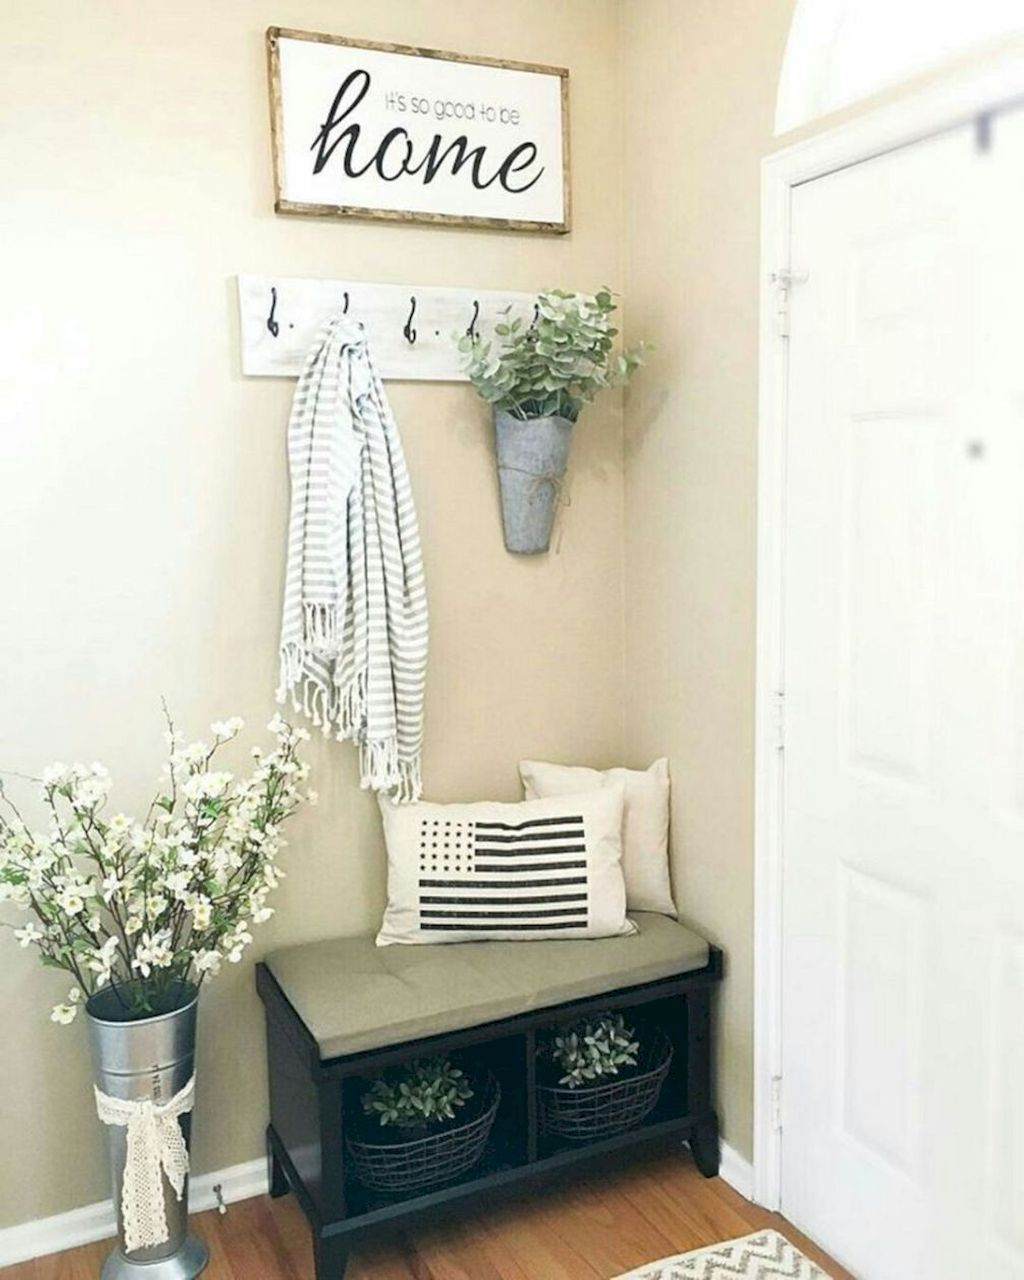 Splendid Entryway Home Décor Ideas That Make Your Place Look Cool 20